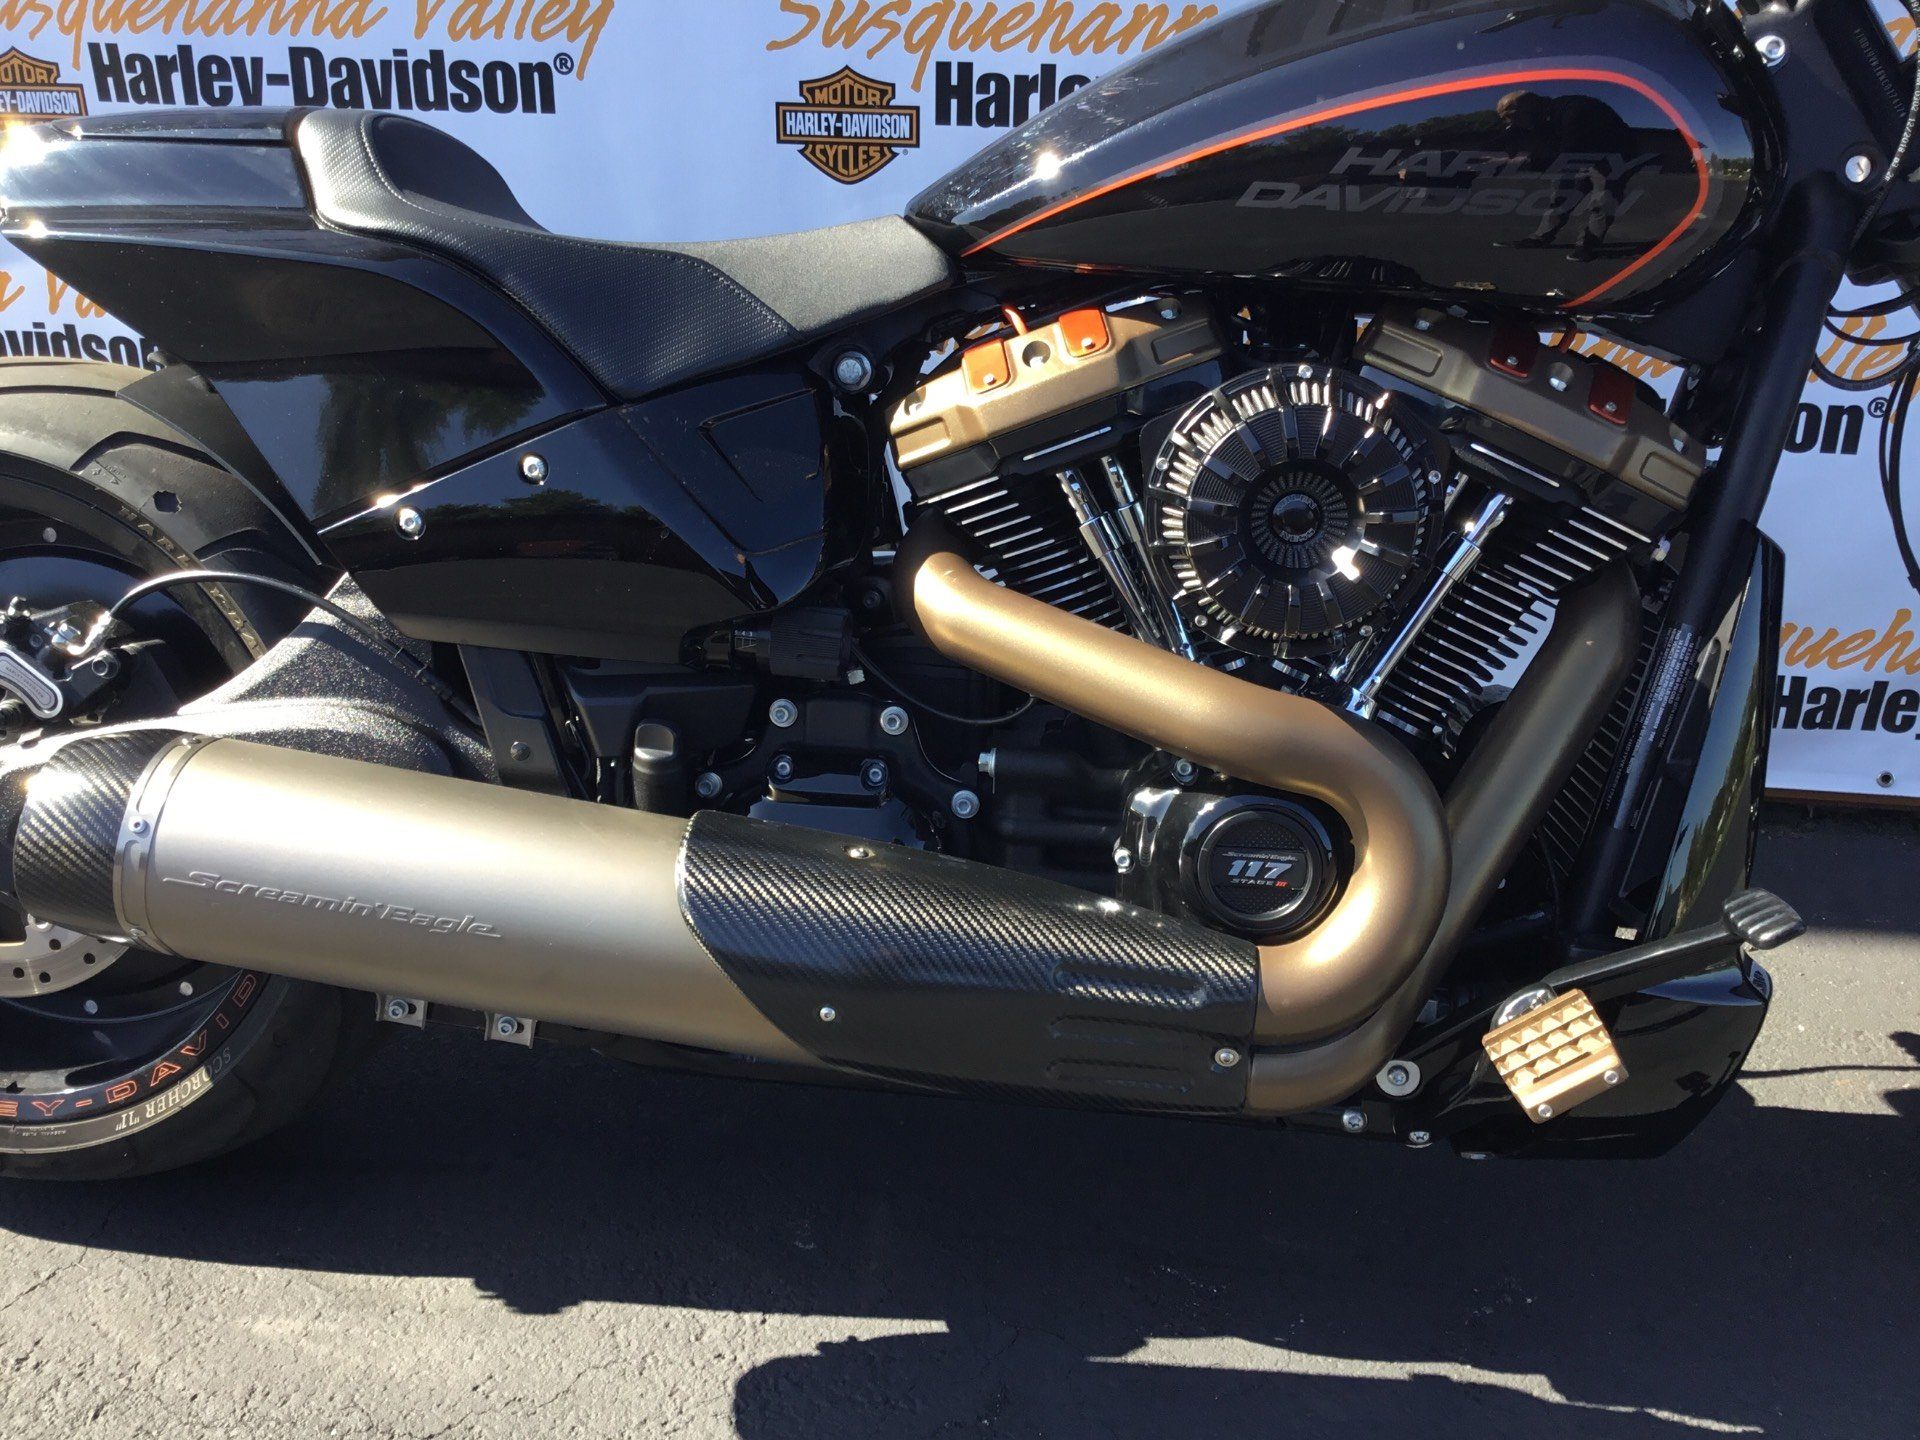 2019 Harley-Davidson FXDRS in Harrisburg, Pennsylvania - Photo 2